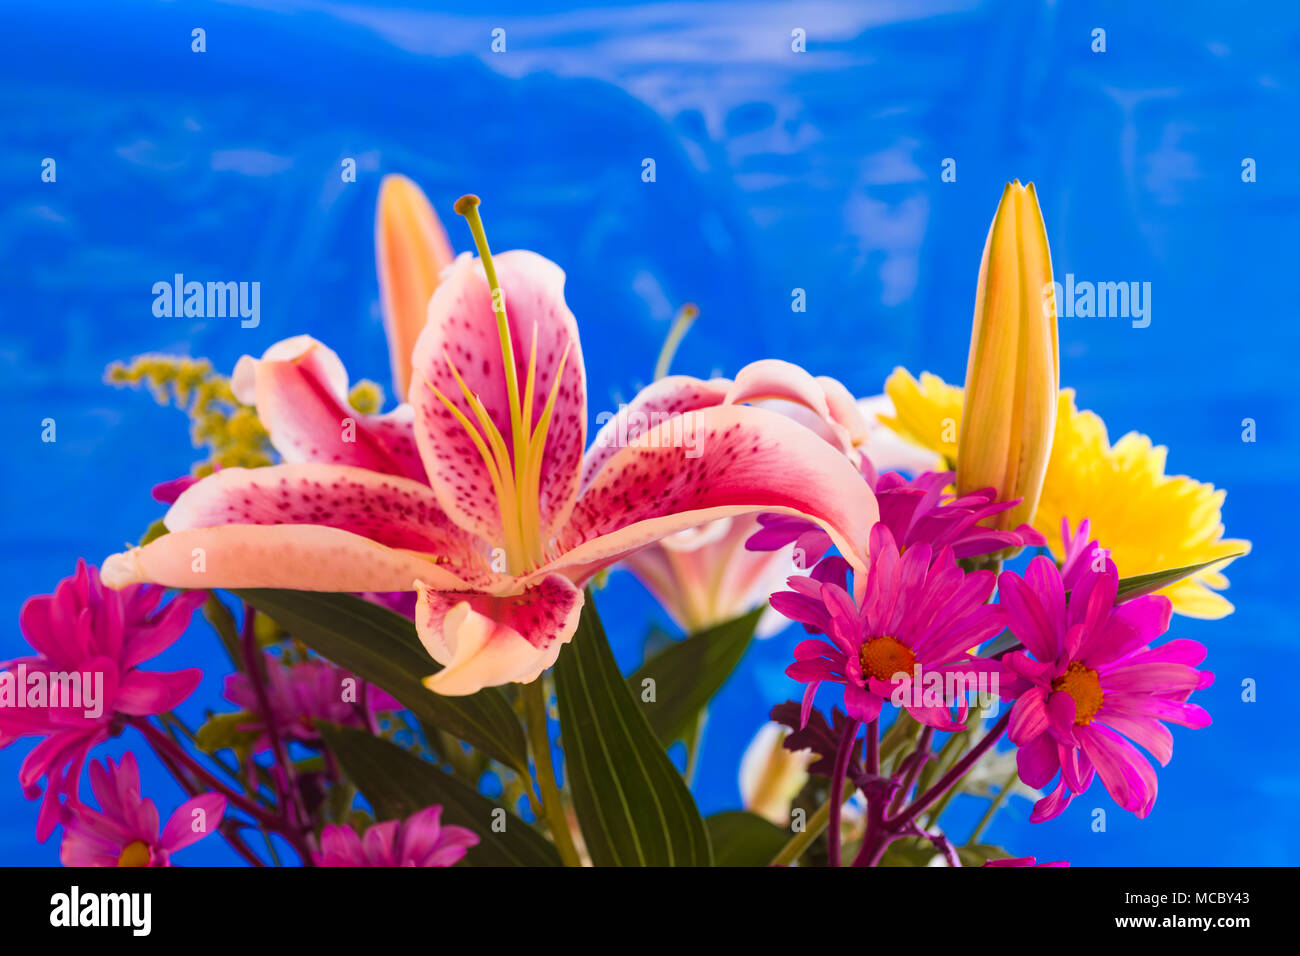 Floral arrangement with red and white Stargazer Lily and purpleand yellow mums - Stock Image